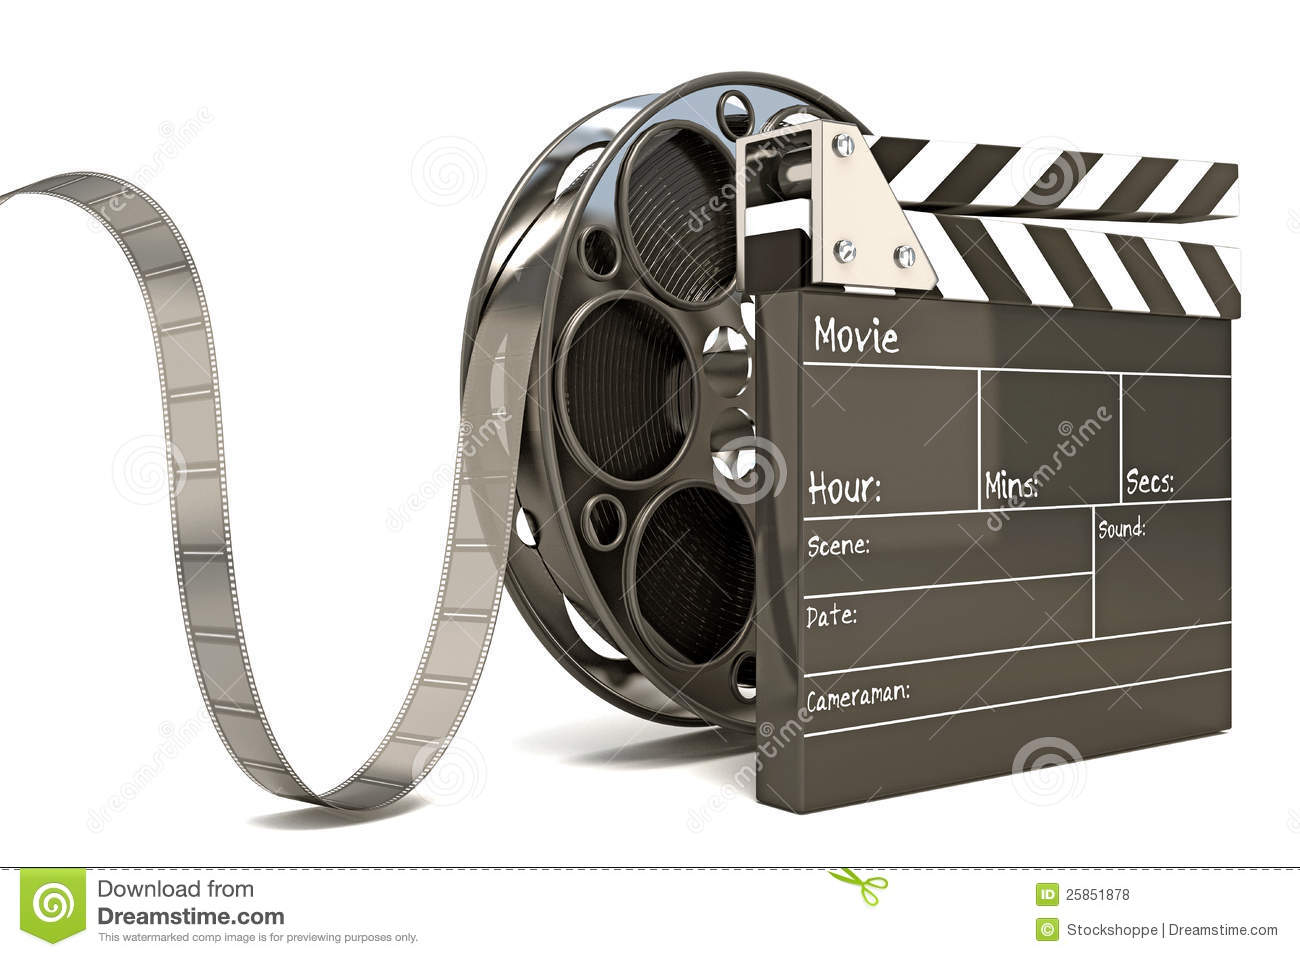 Clap stock illustrations 4289 clap stock illustrations vectors clap board with film reel illustration of clap board with film reel royalty free stock altavistaventures